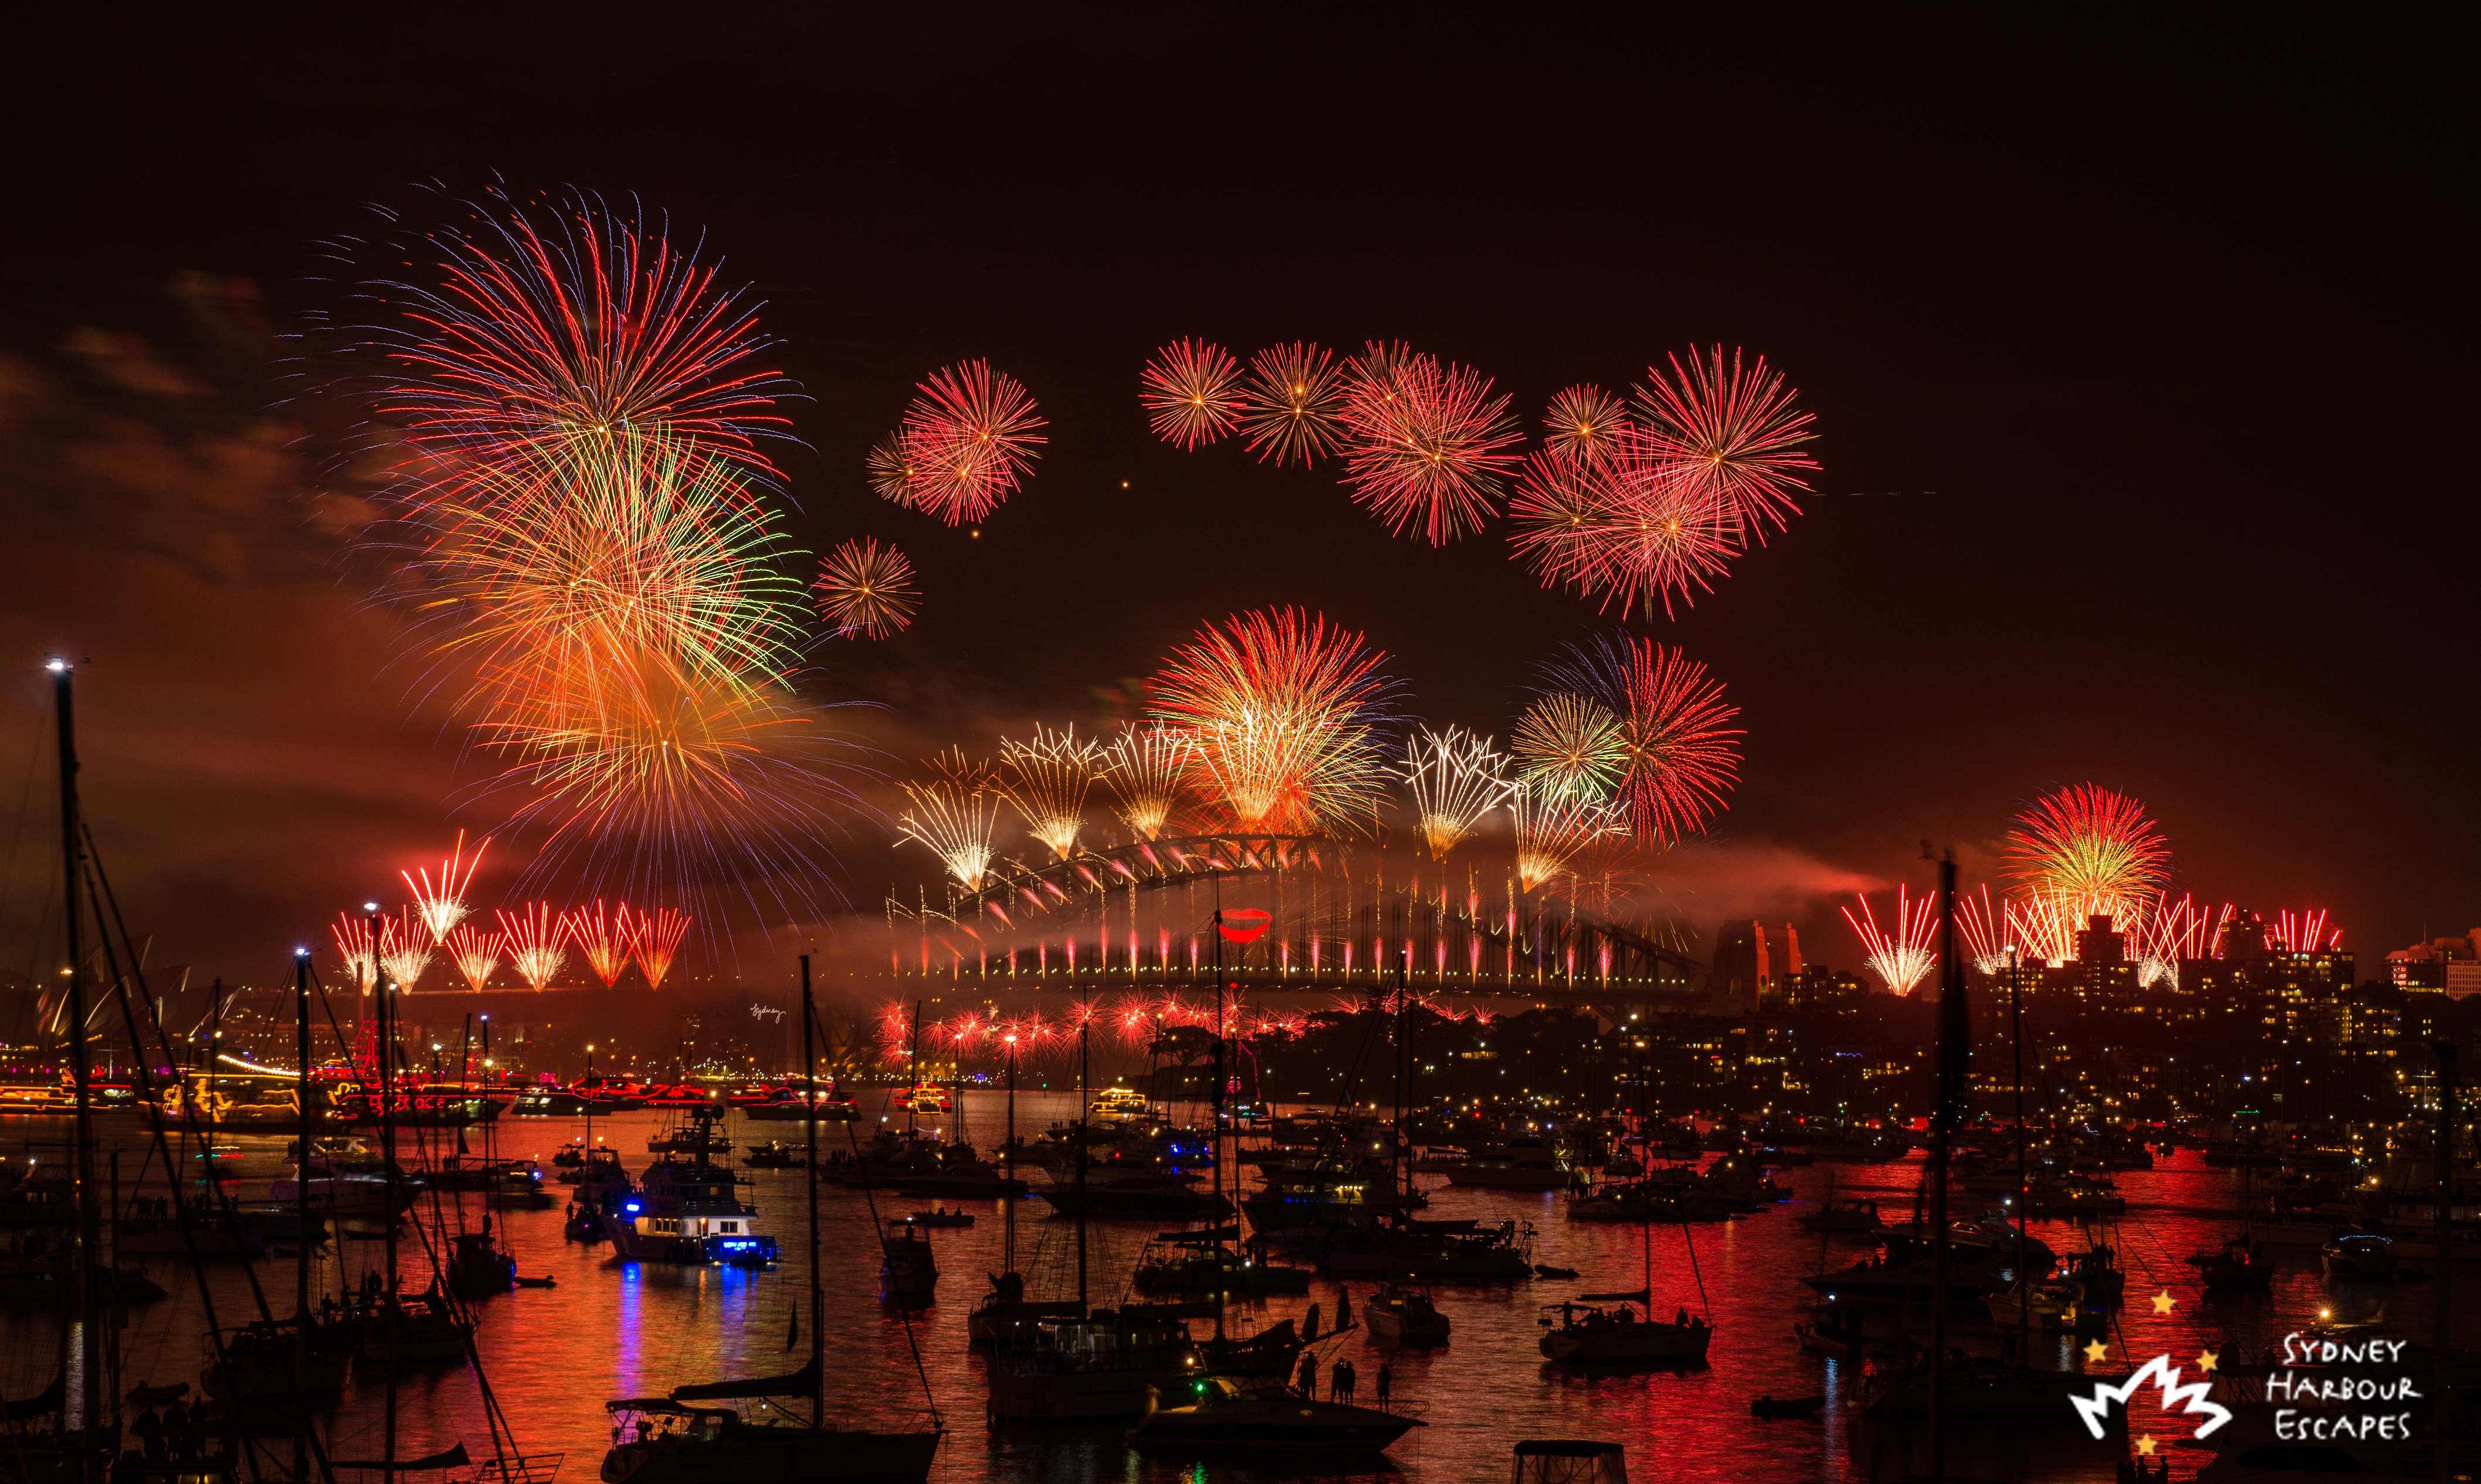 NYE_Sydney_Harbour_Escapes